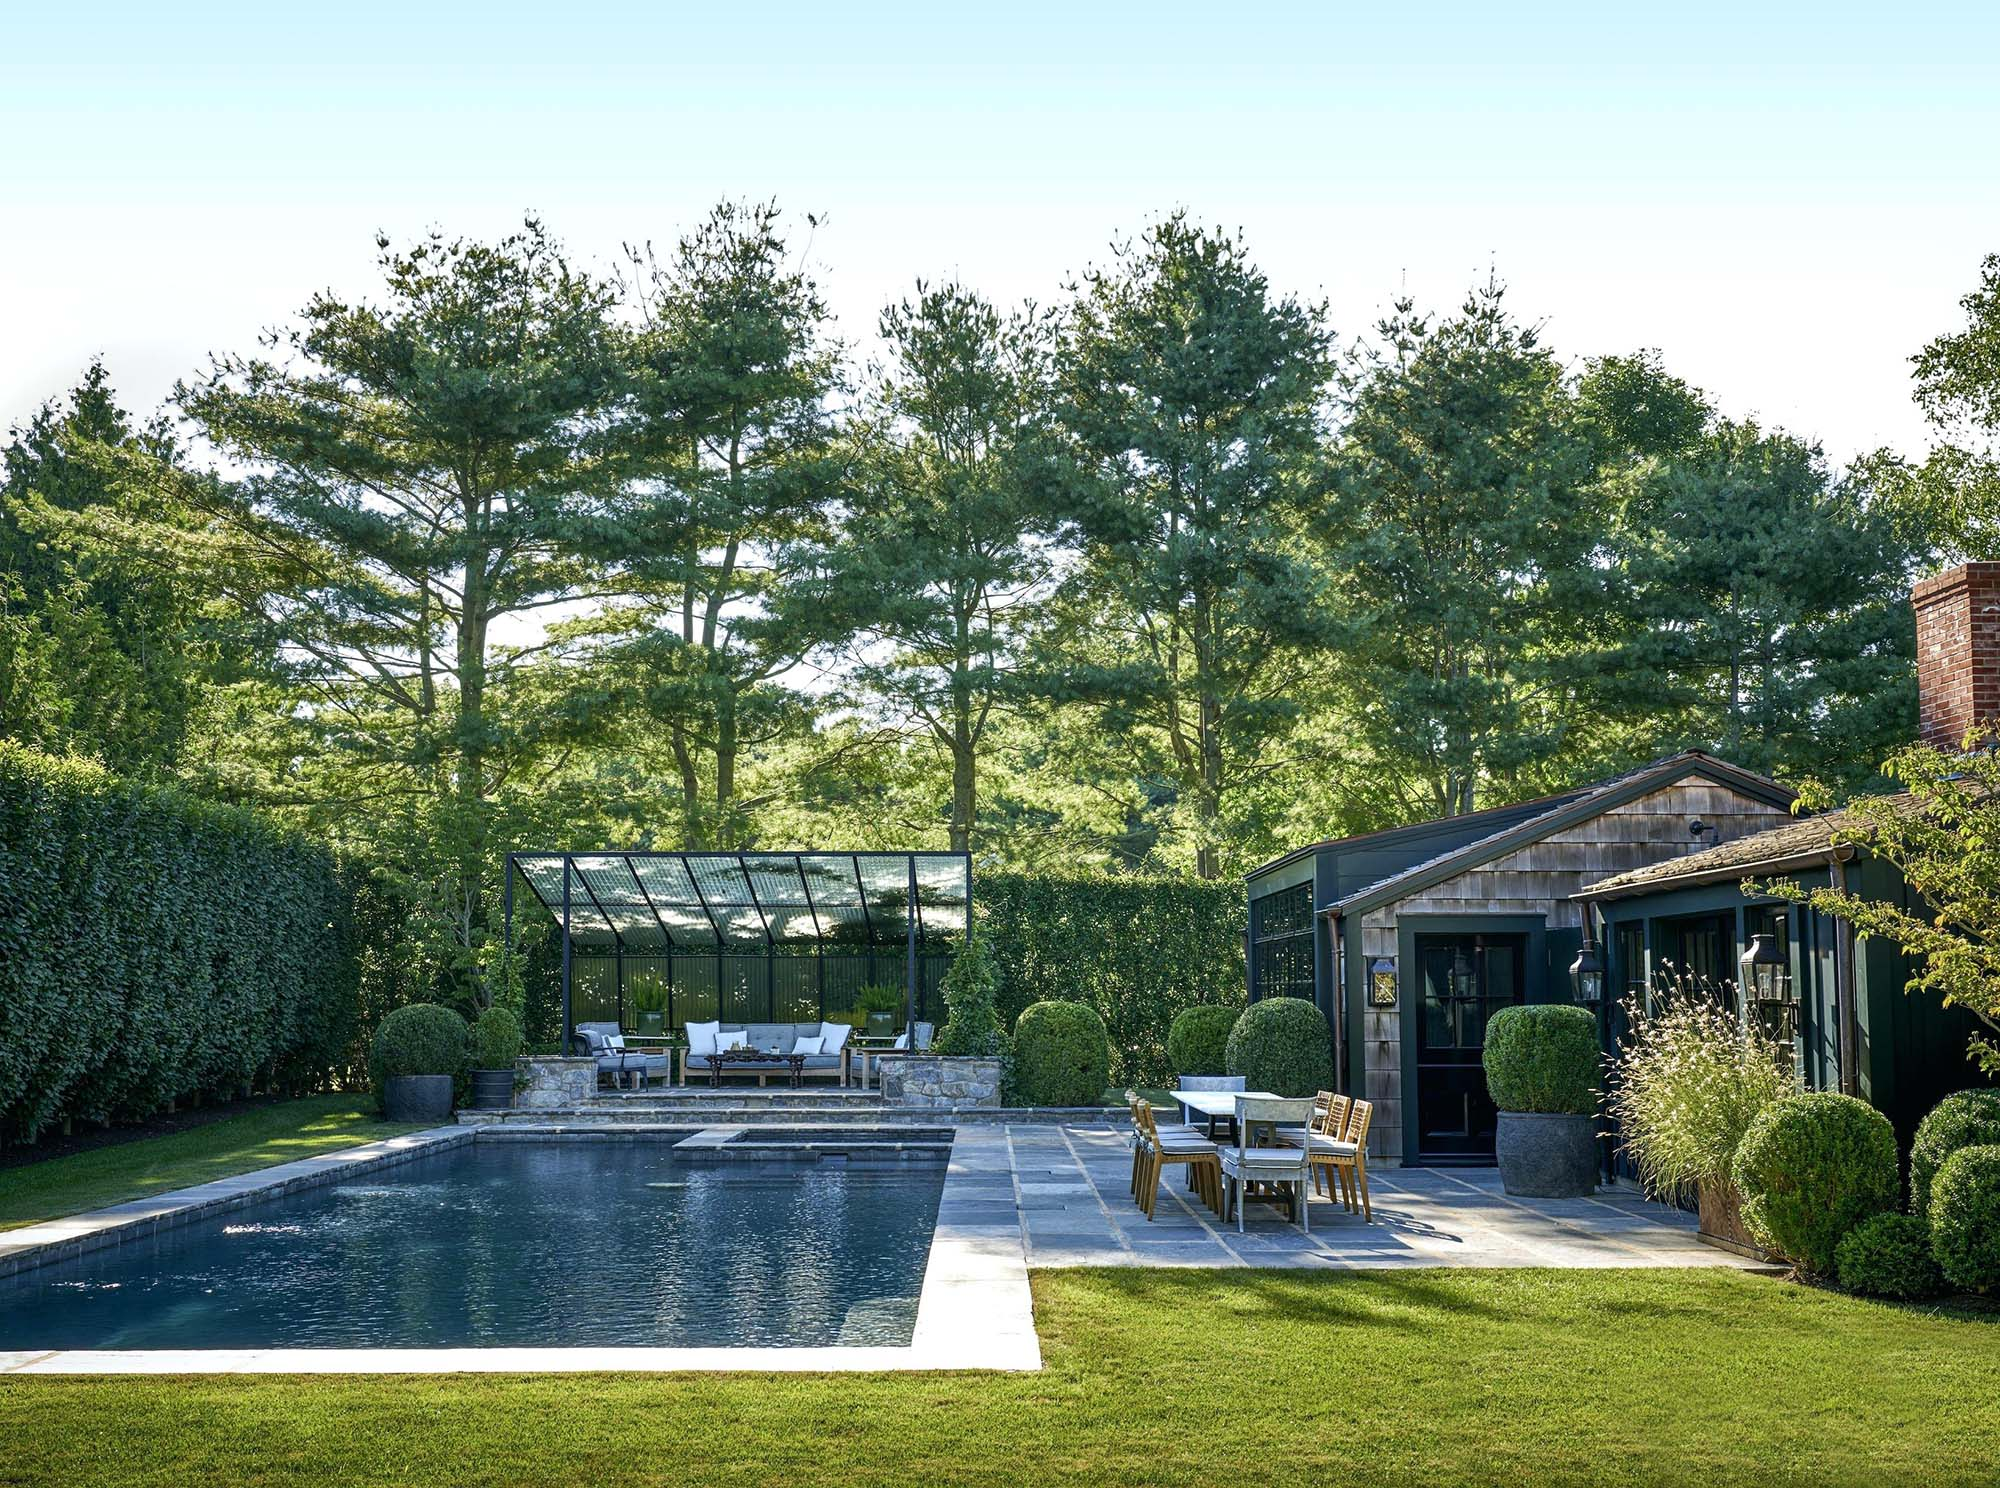 rustic pool house design in gound rectangle concrete pool with blue stone patio real stone seating area